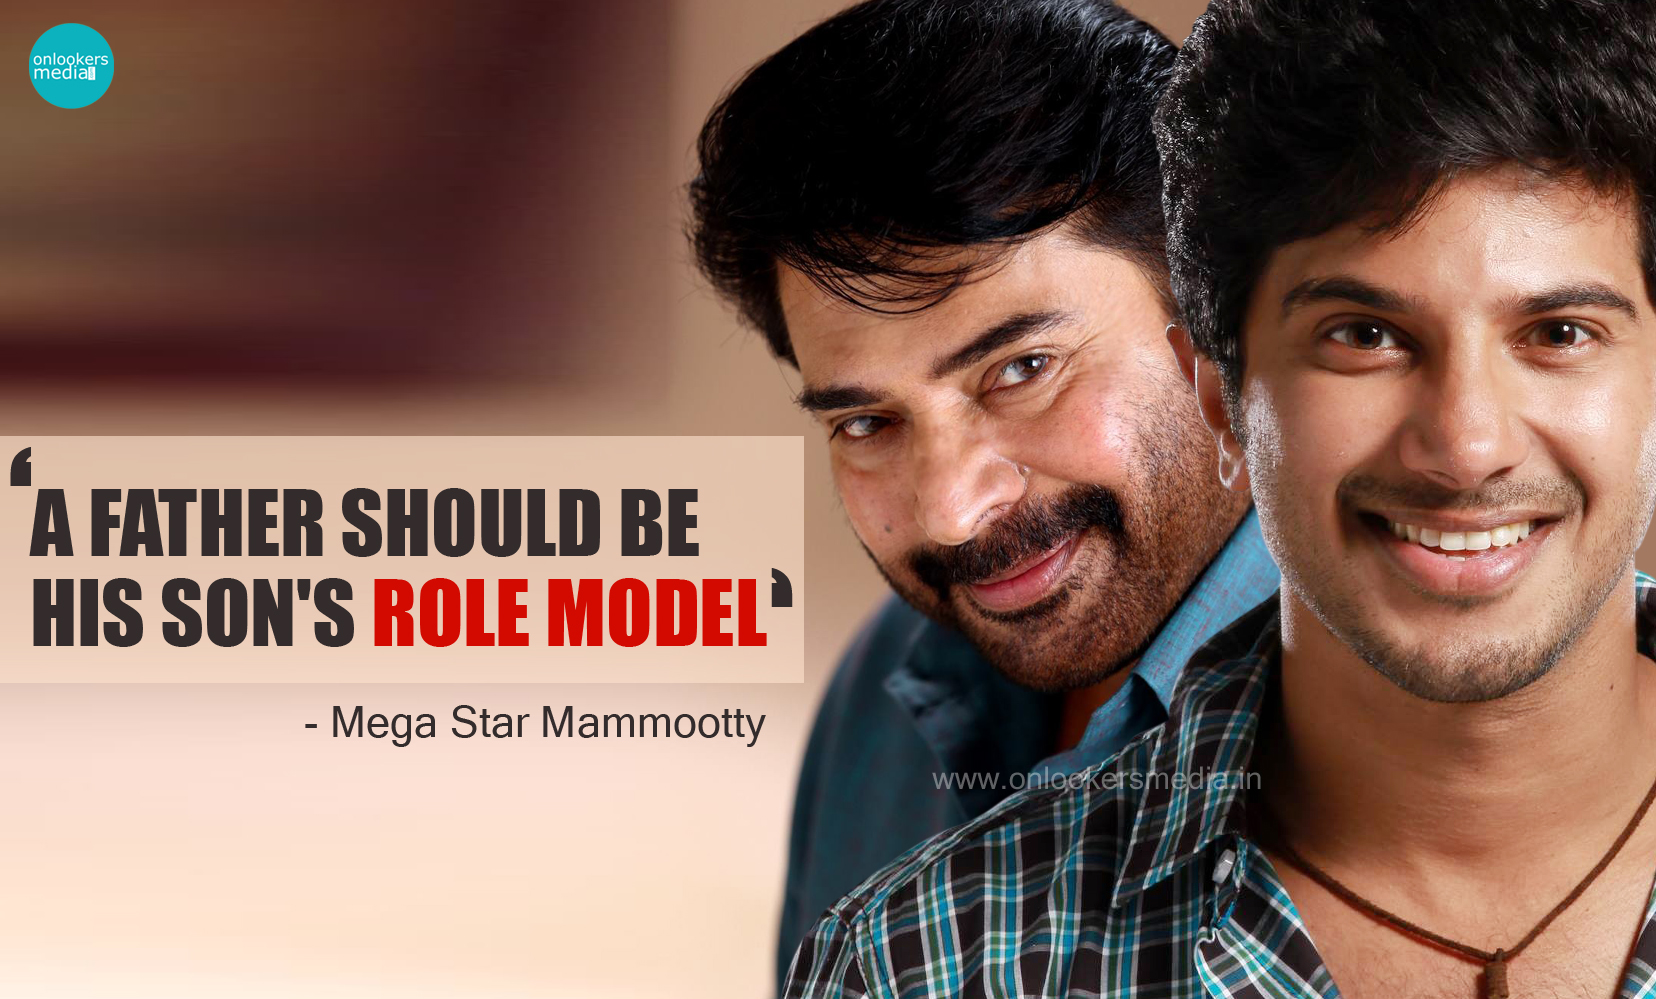 A father must be a hero for his son, says mega star Mammootty-Dulquer Salmaan-Onlookers Media